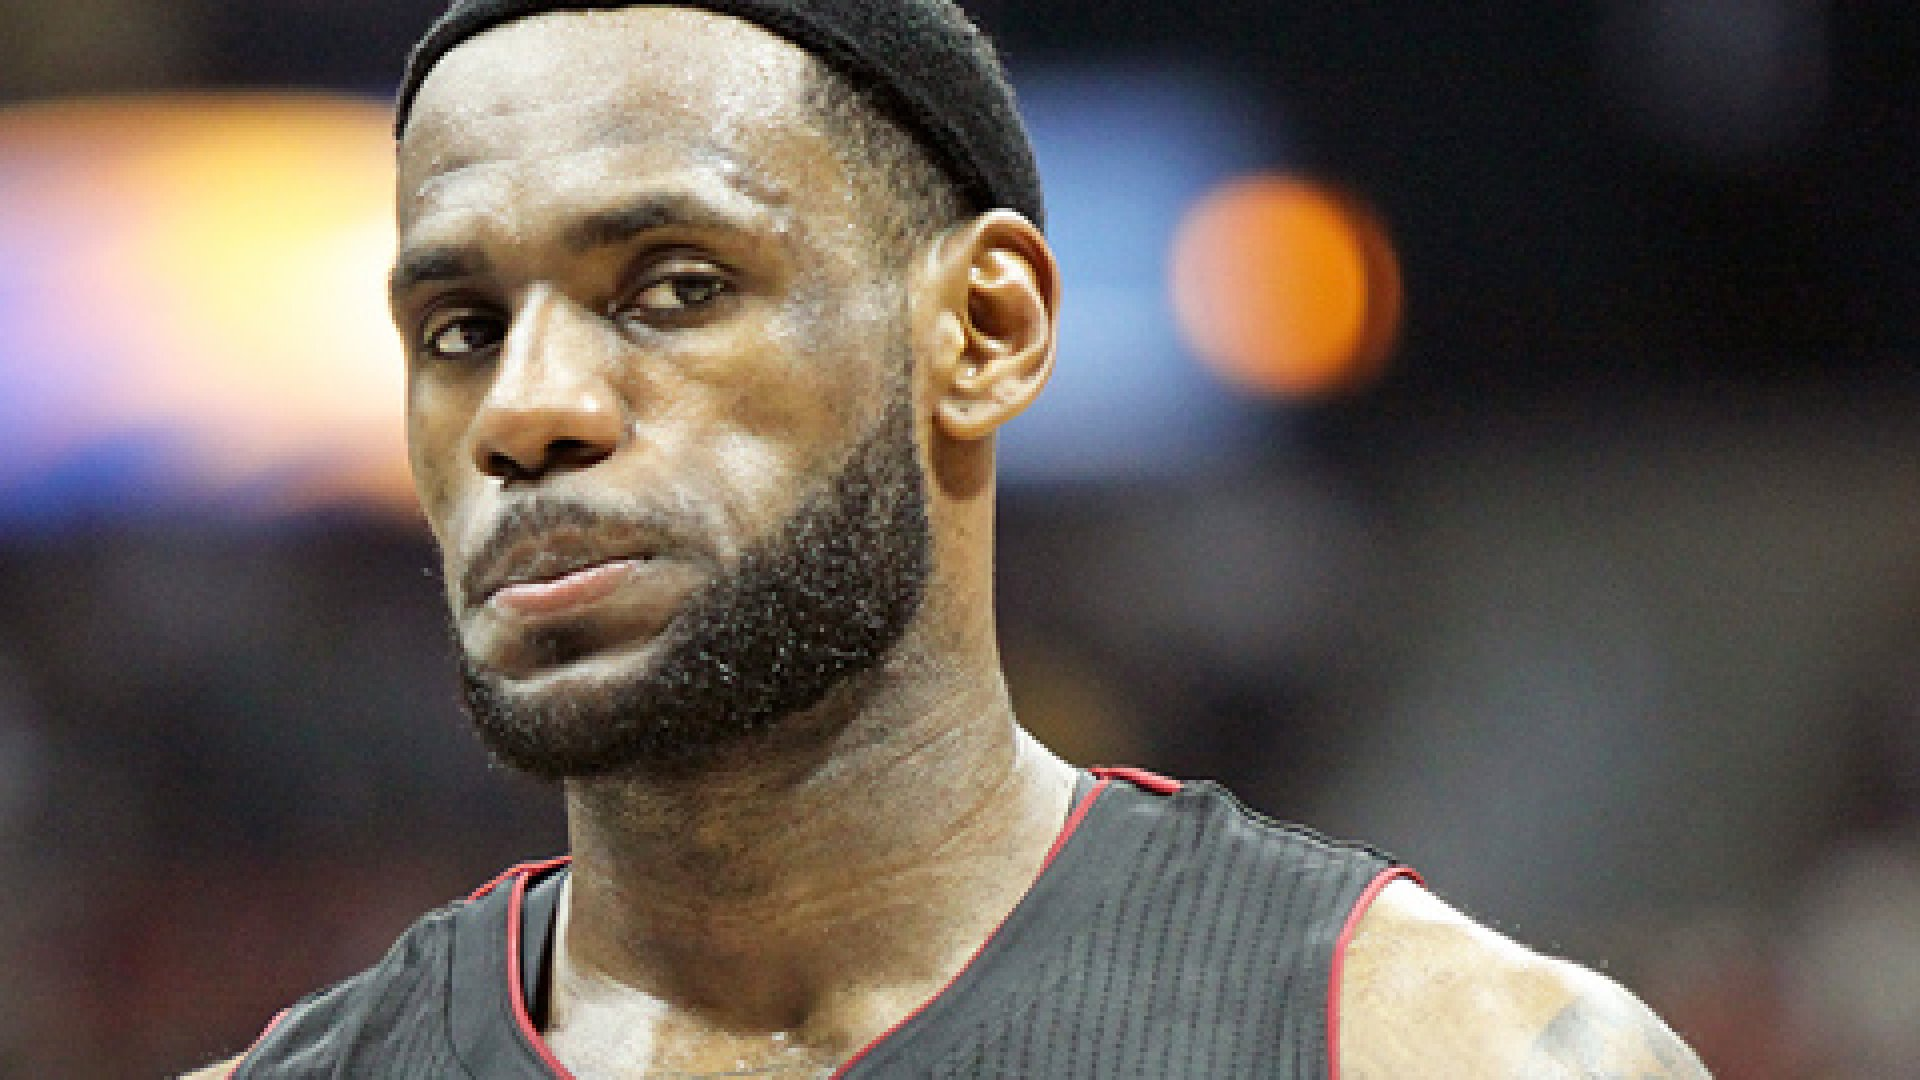 Lebron James is renowned for both his star performance and his whiny attitude.